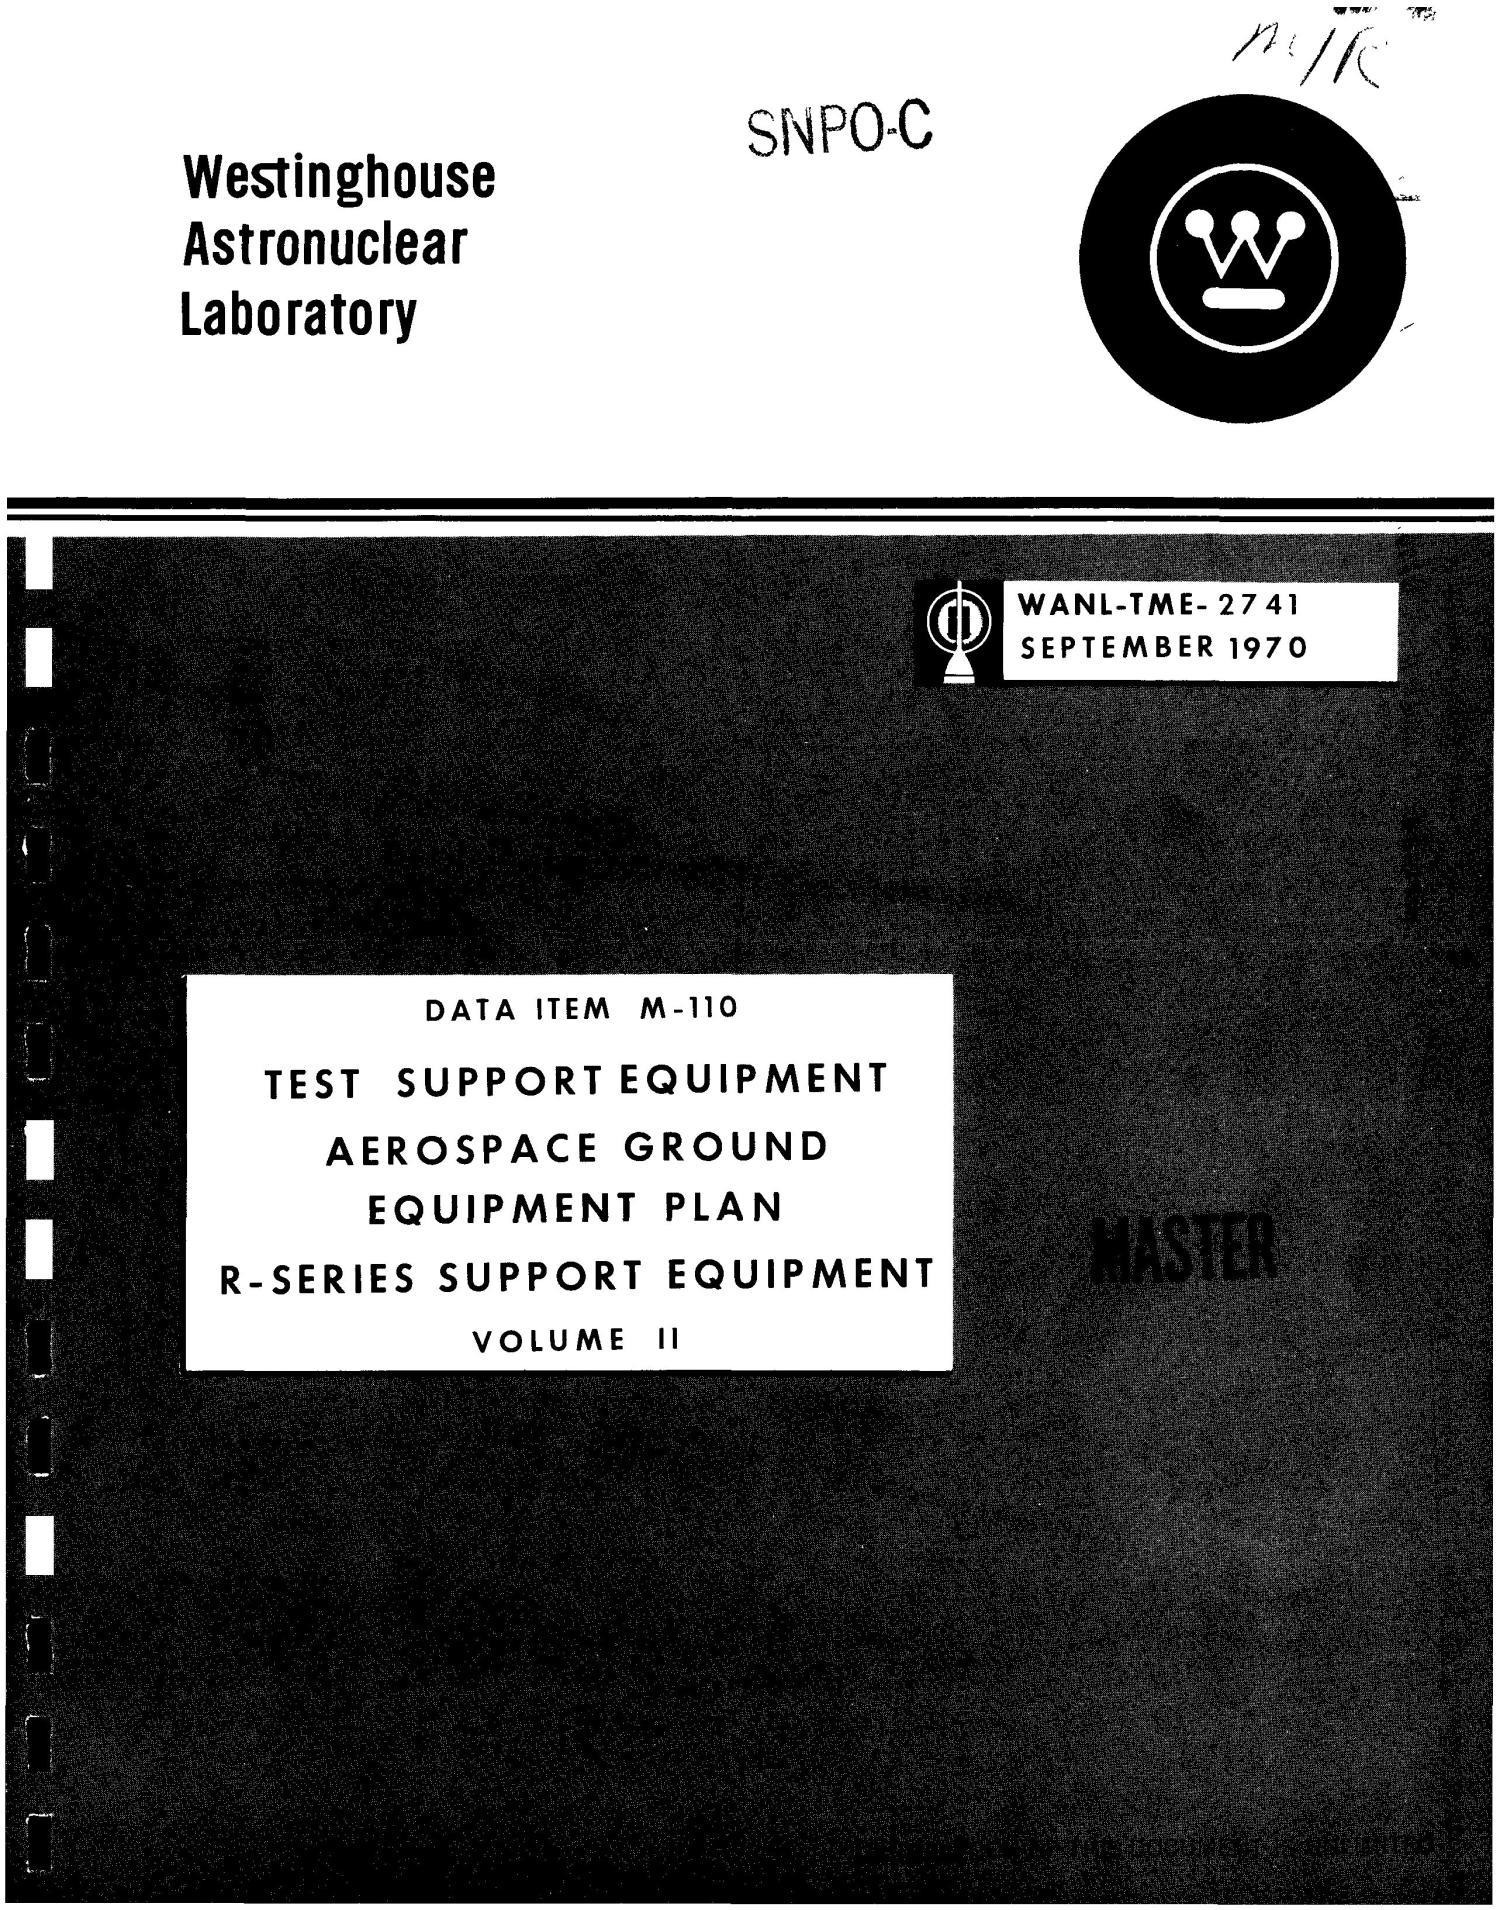 Test support equipment, aerospace ground equipment plan, r-series support equipment. Volume II                                                                                                      [Sequence #]: 1 of 178